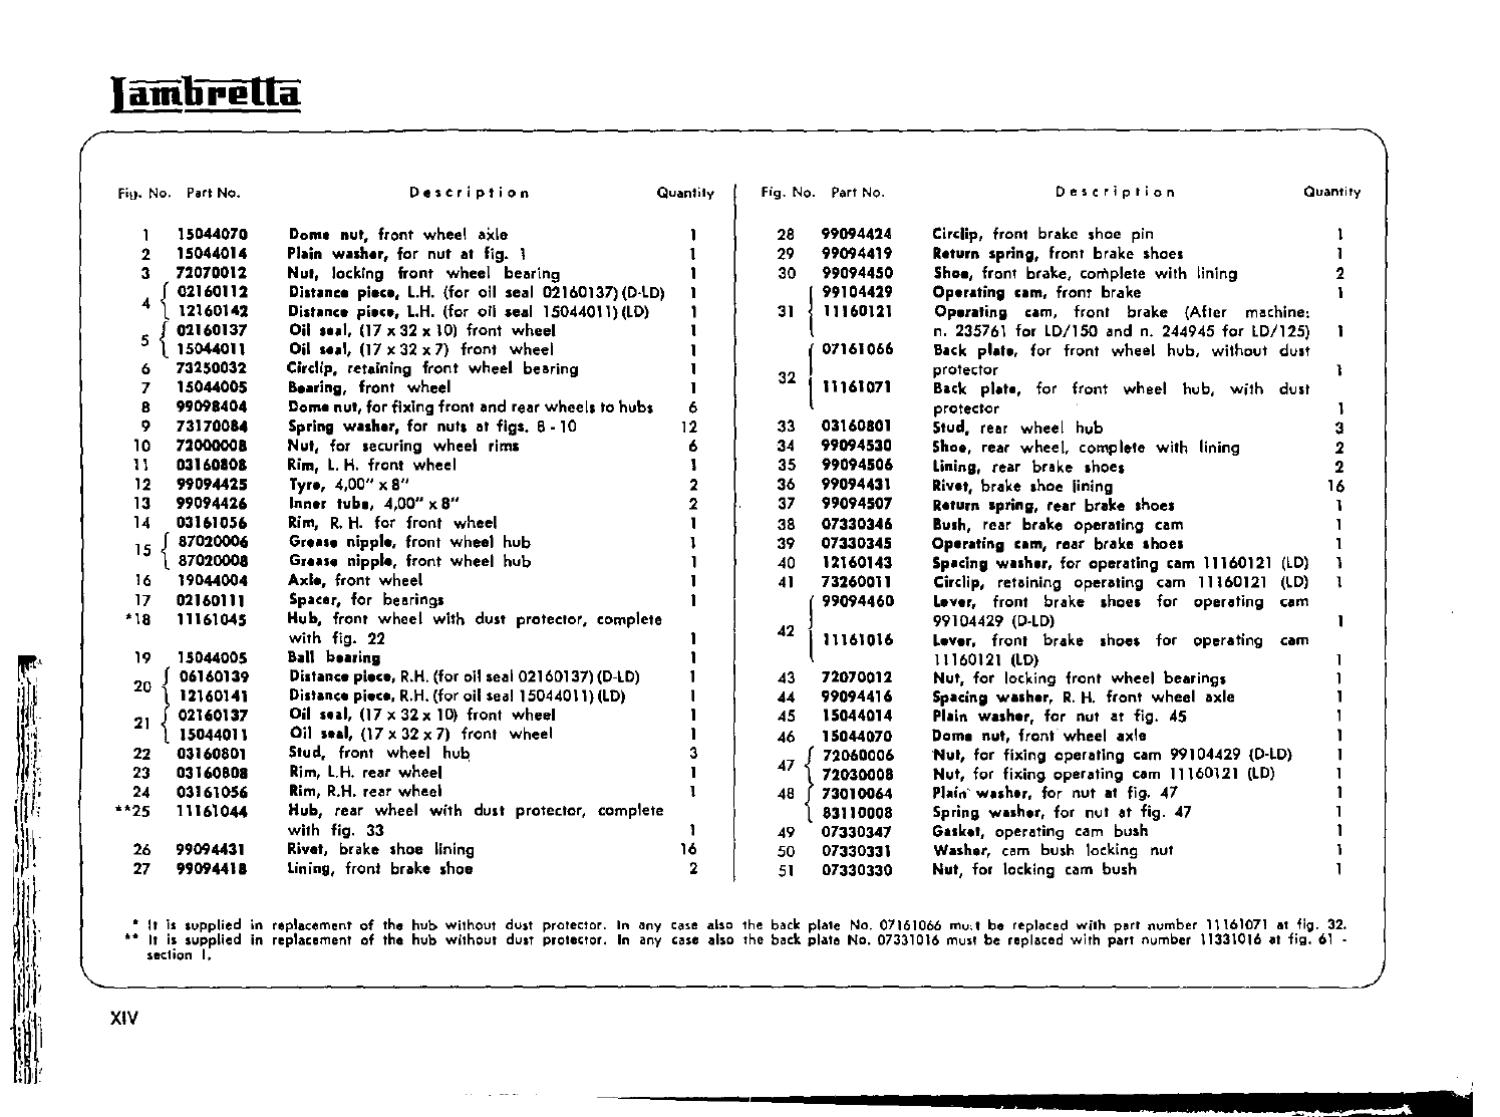 125/150 Lambretta D/LD Spare Parts Manual by Casa